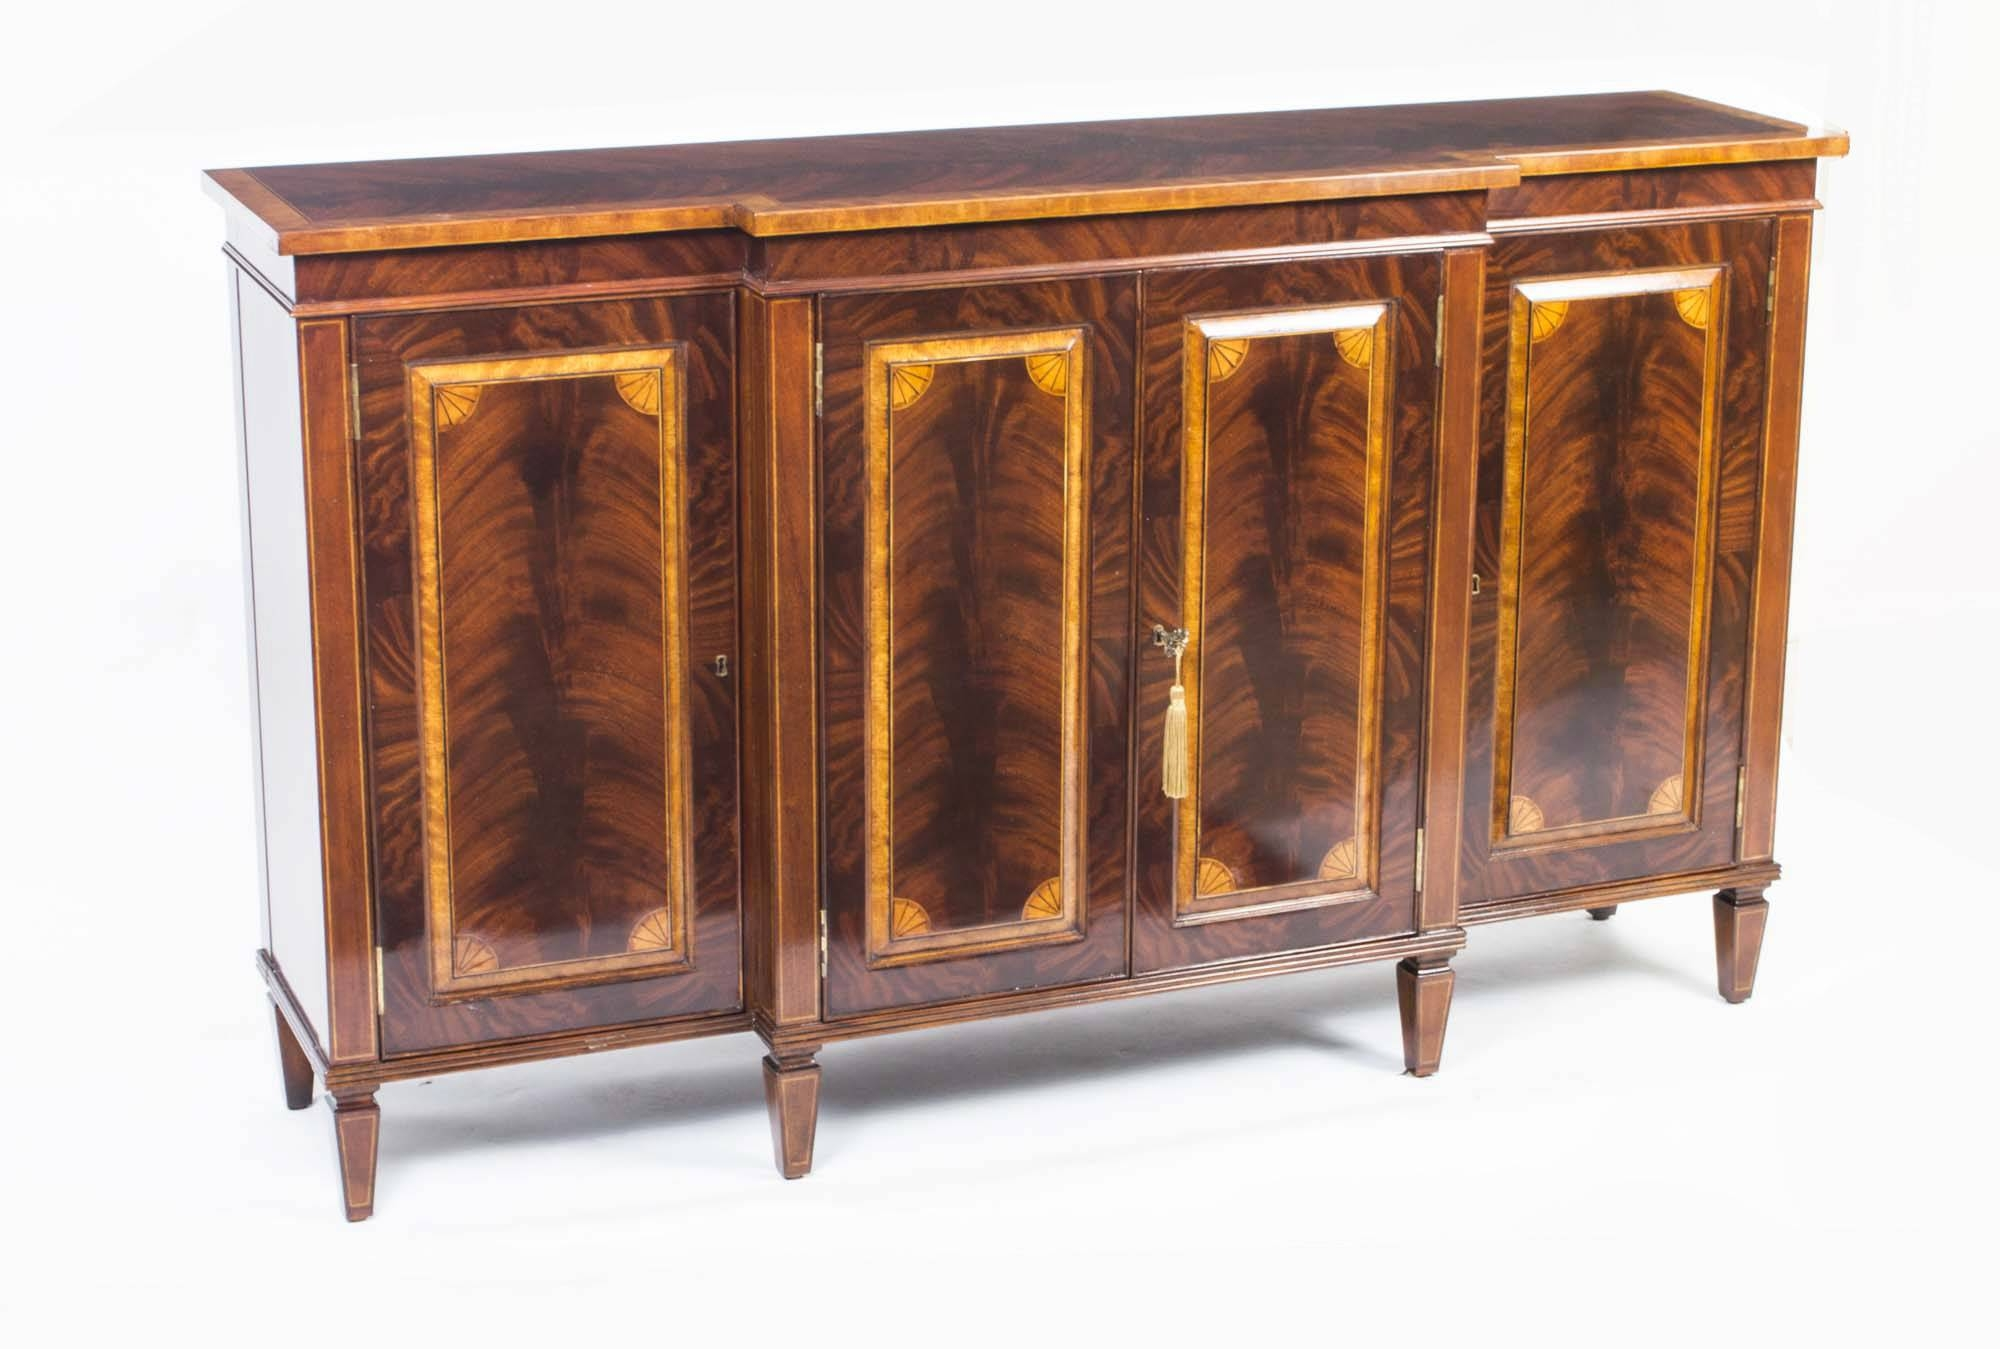 Flame Mahogany Four Door Sideboard Credenza Chiffonier intended for Credenza Sideboards (Image 4 of 15)